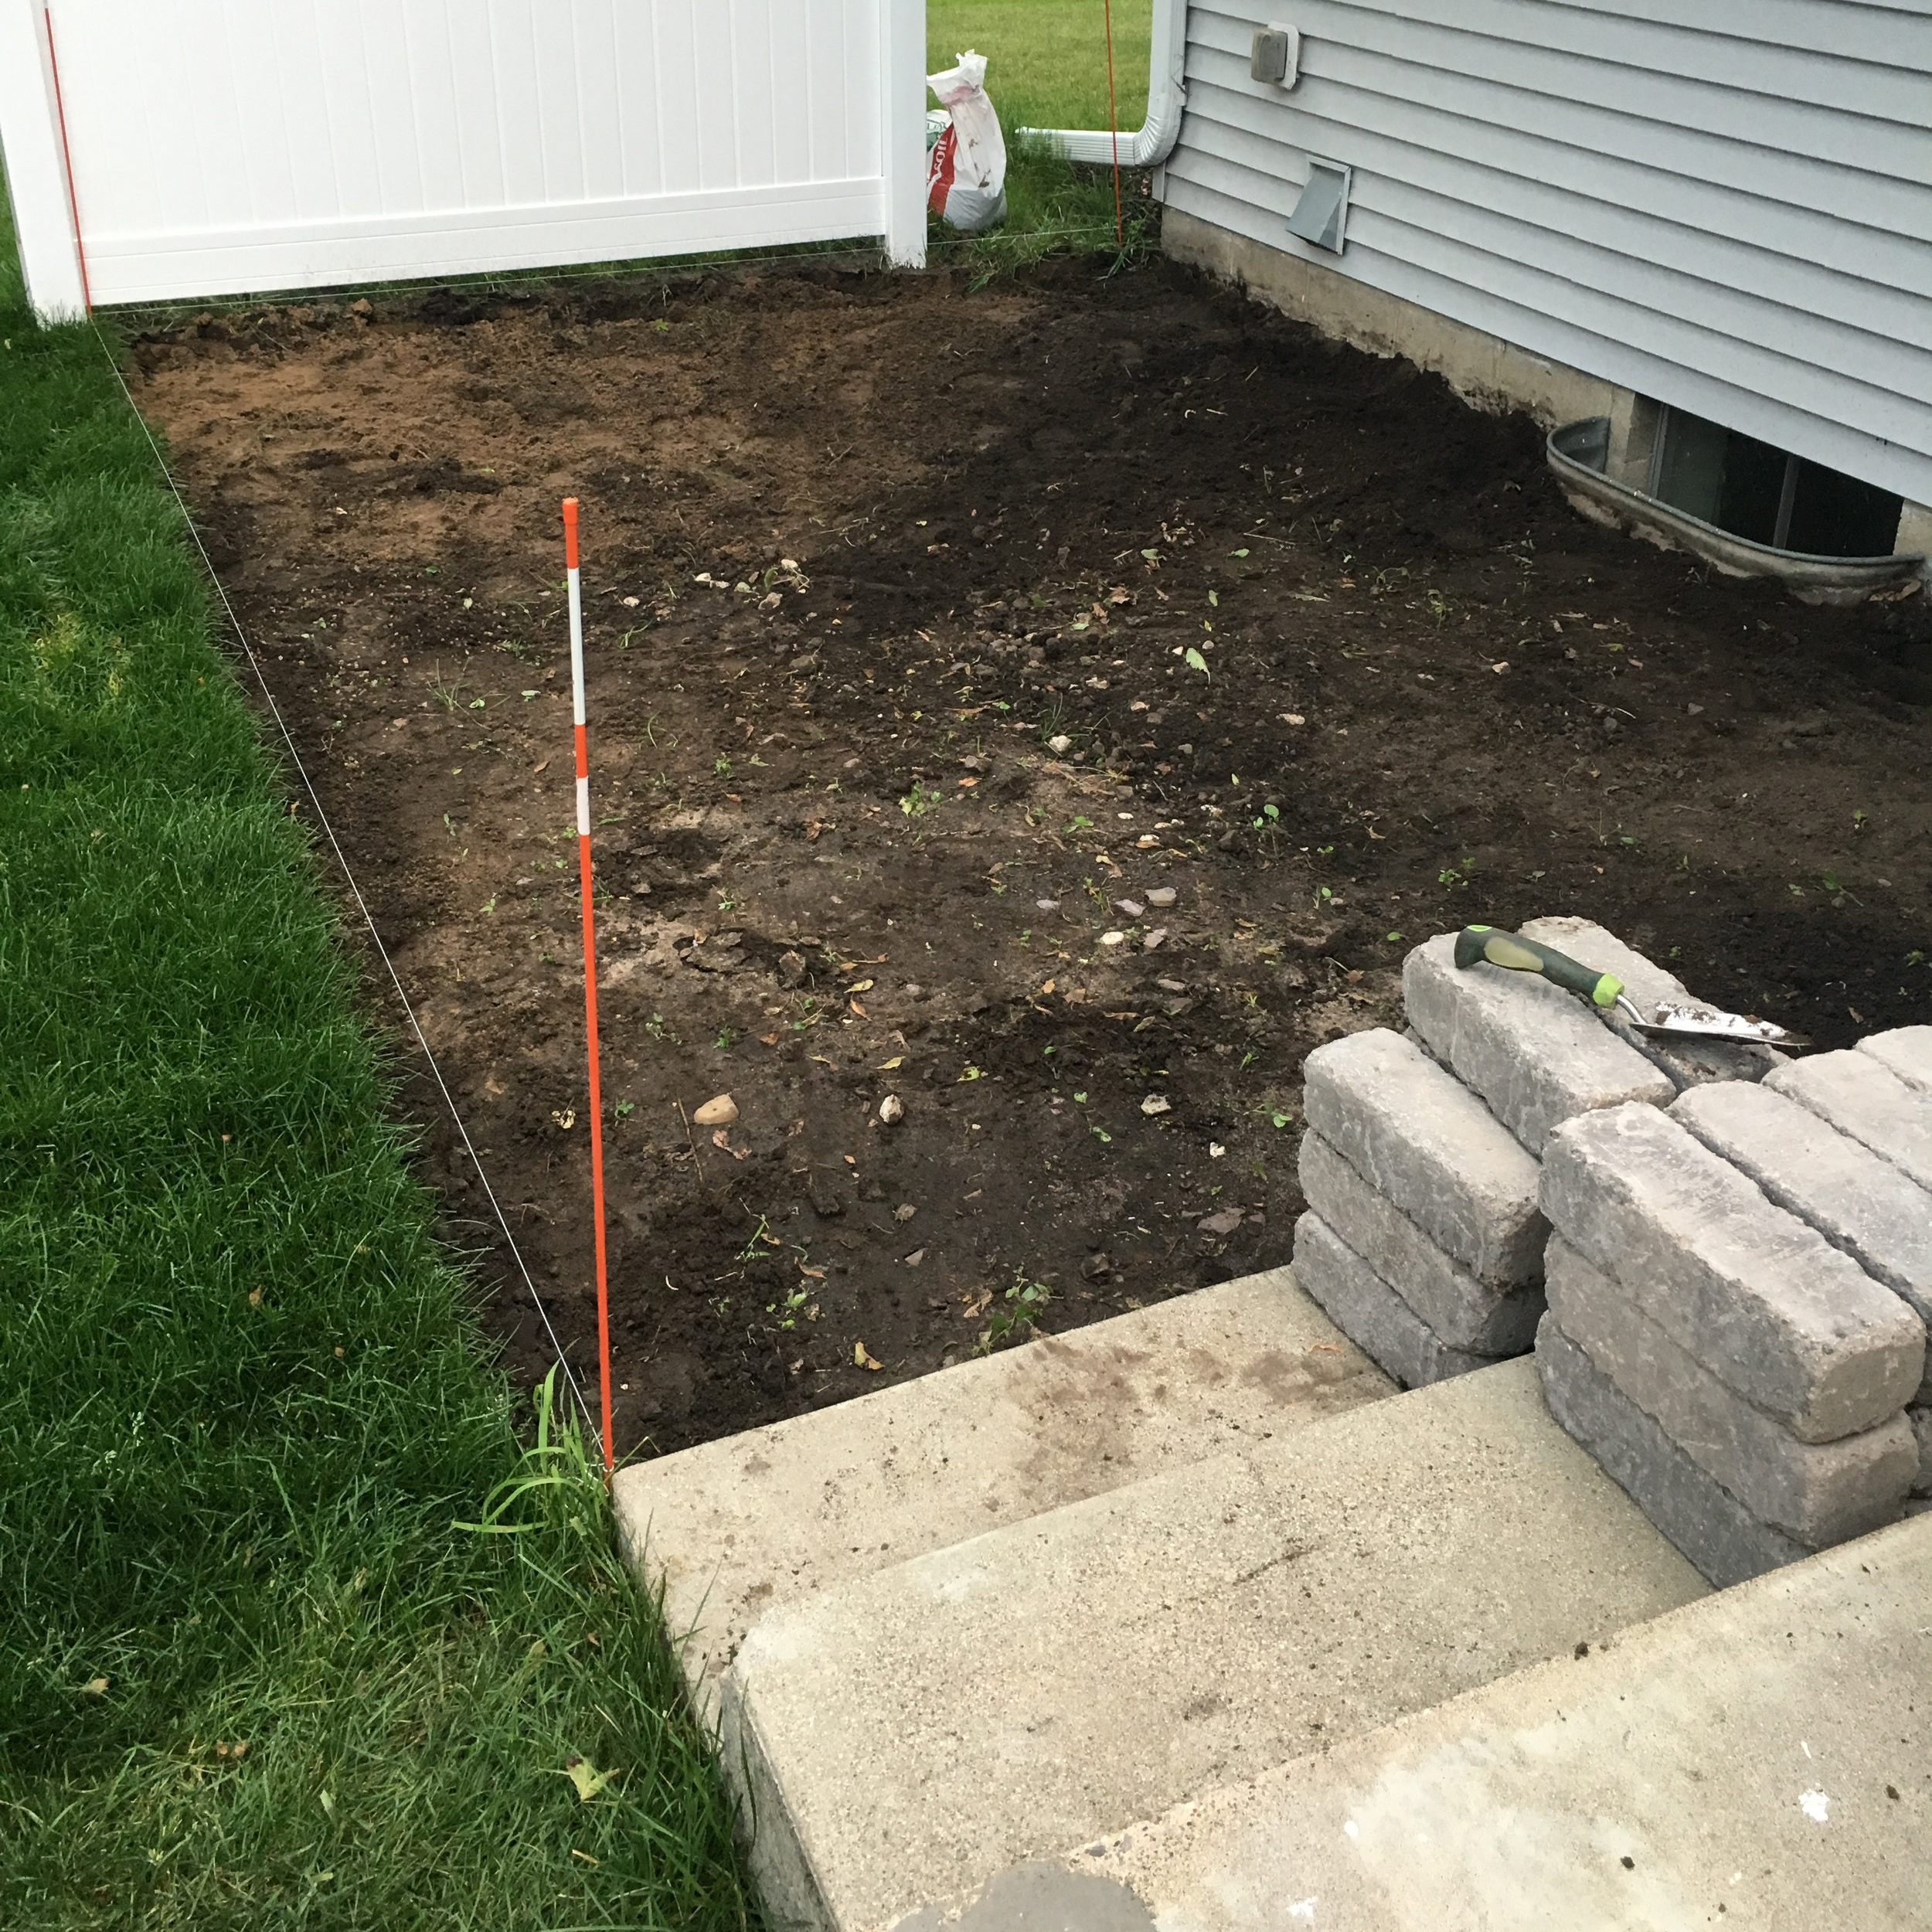 Prepping Soil for Pea Gravel Patio